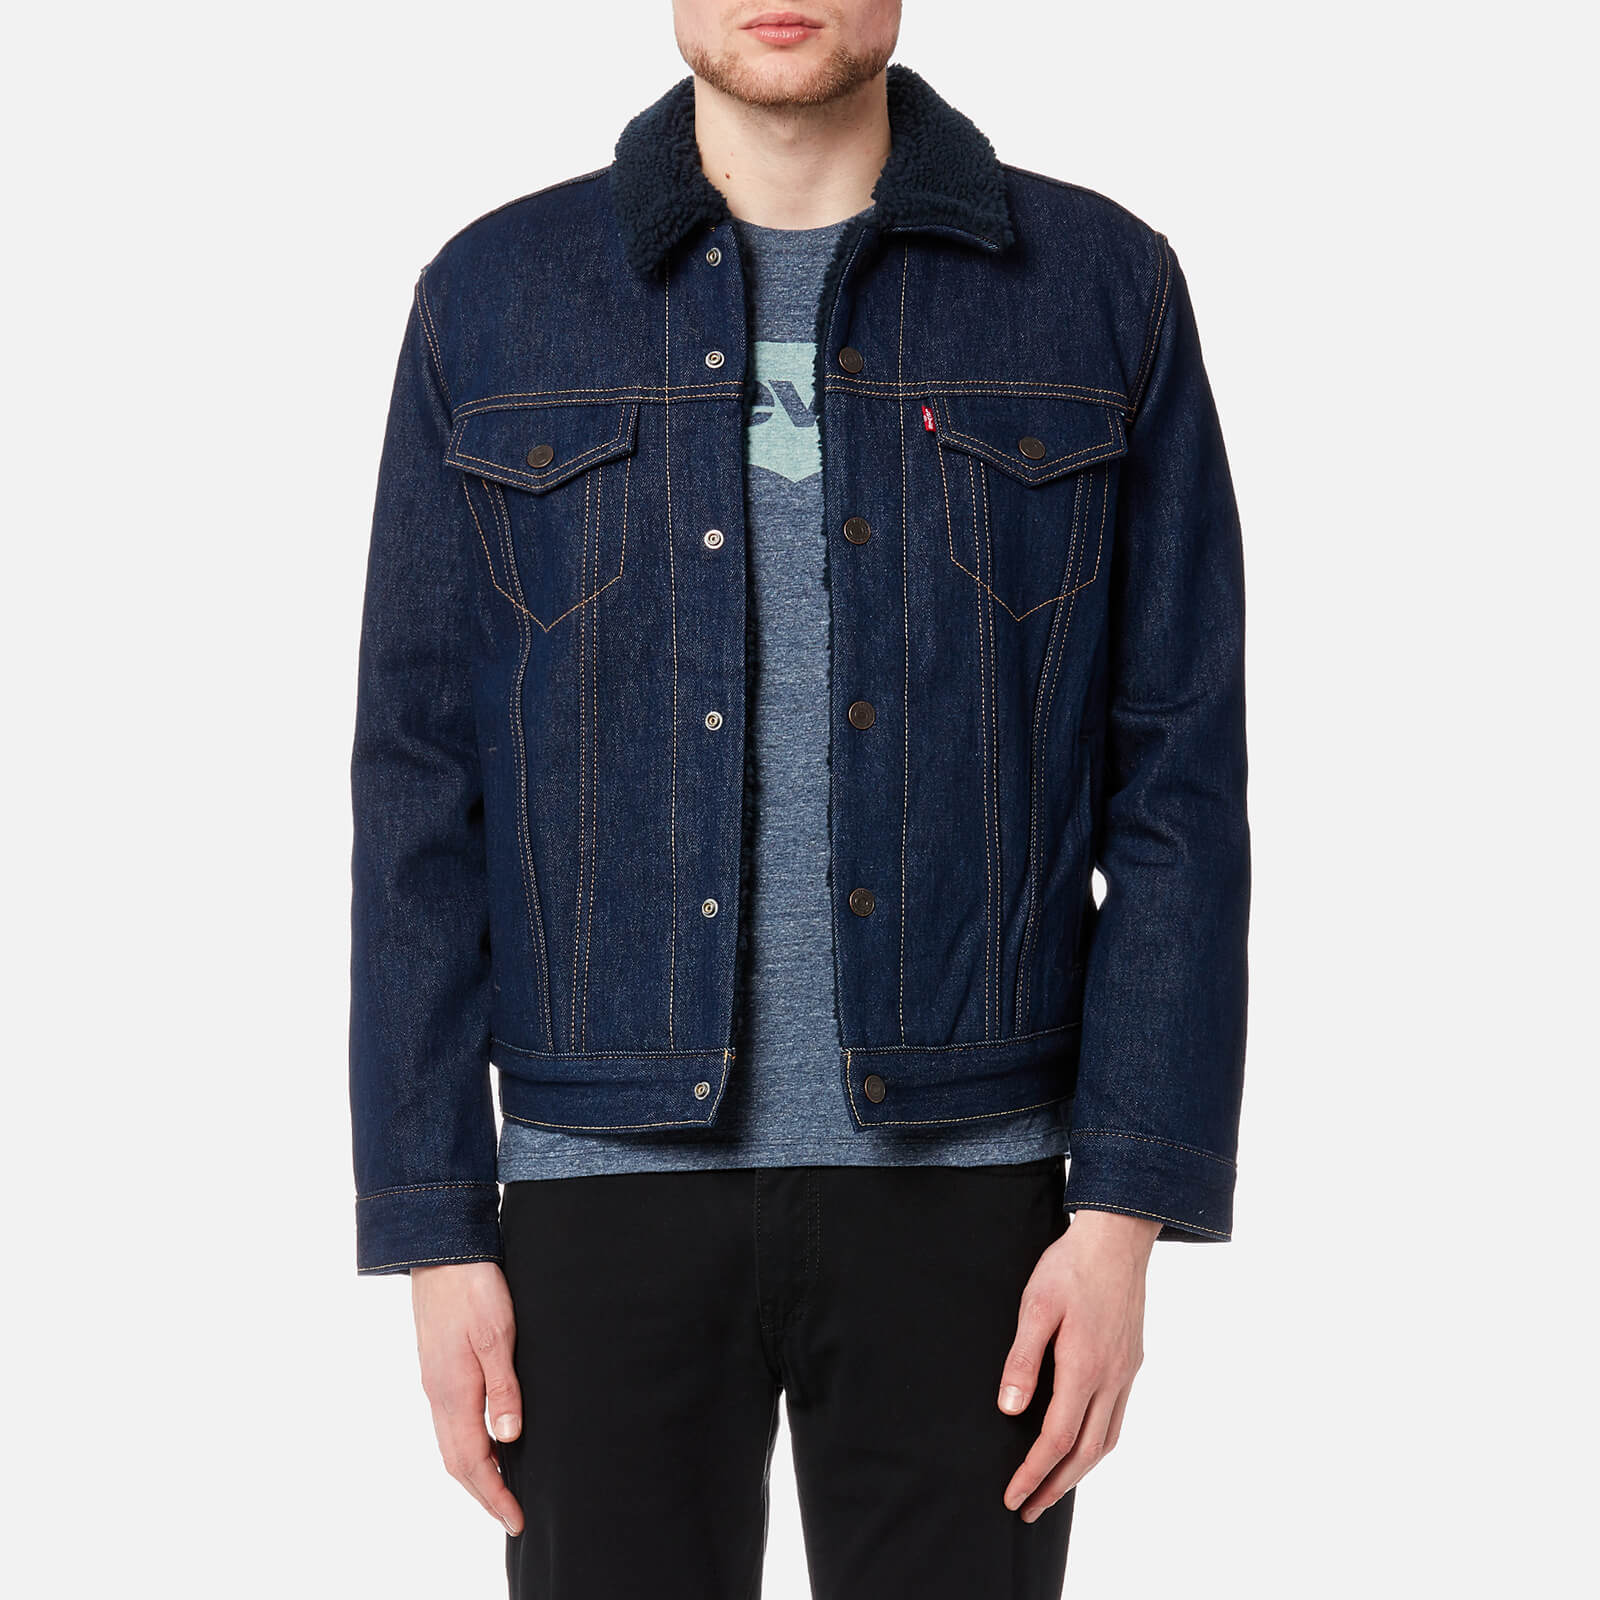 209e91f0d11 Levi's Men's Type 3 Sherpa Trucker Jacket - Indigo Sheep Clothing |  TheHut.com